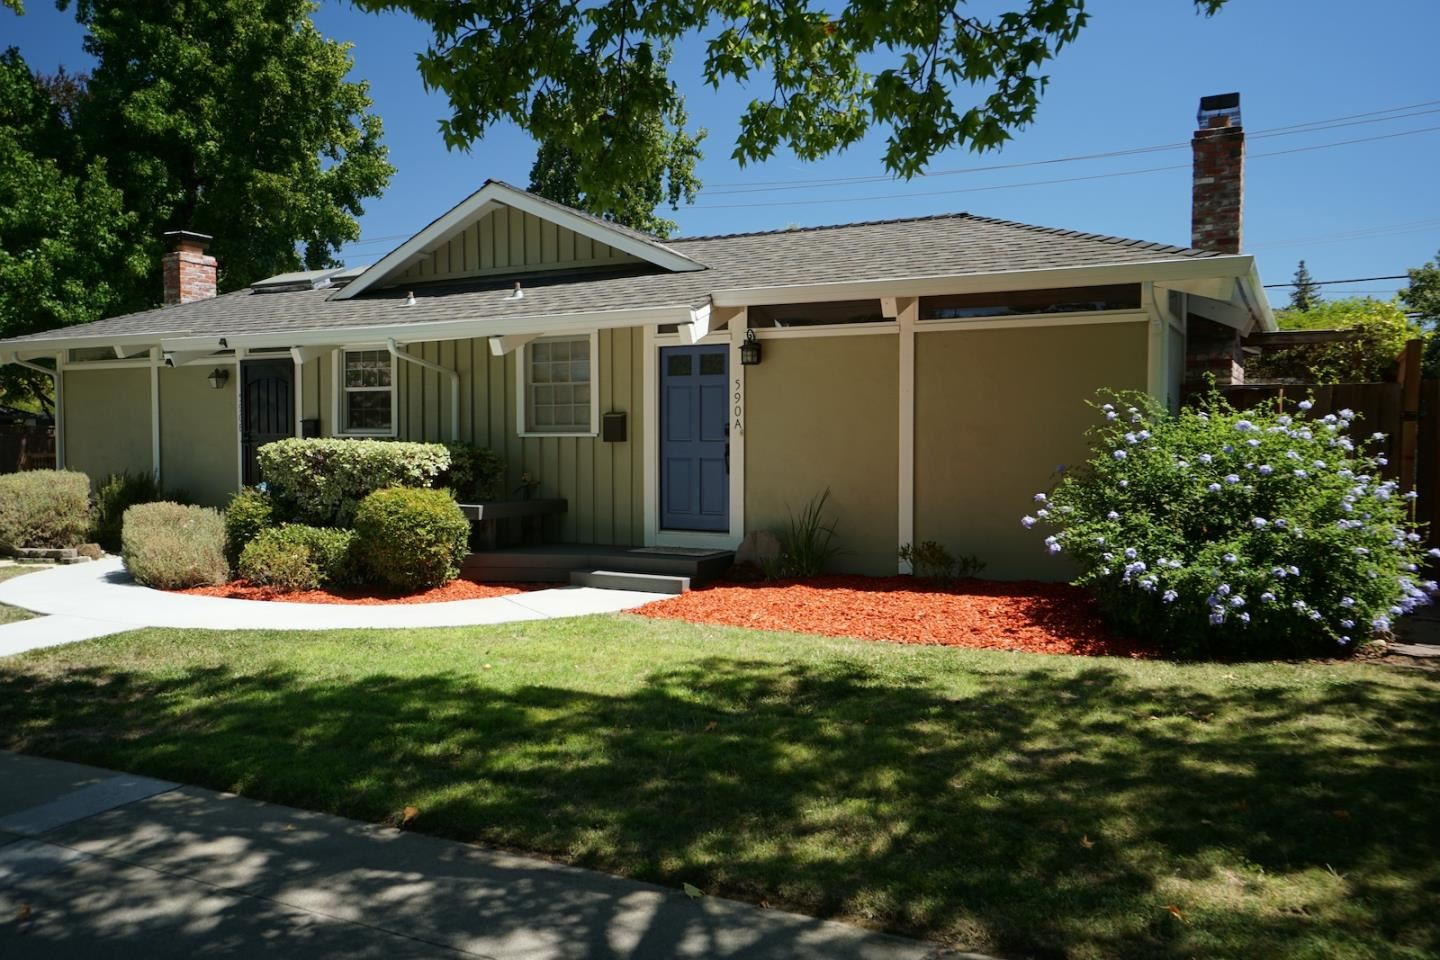 Photo for 590 Millich DR A #A, CAMPBELL, CA 95008 (MLS # ML81765964)